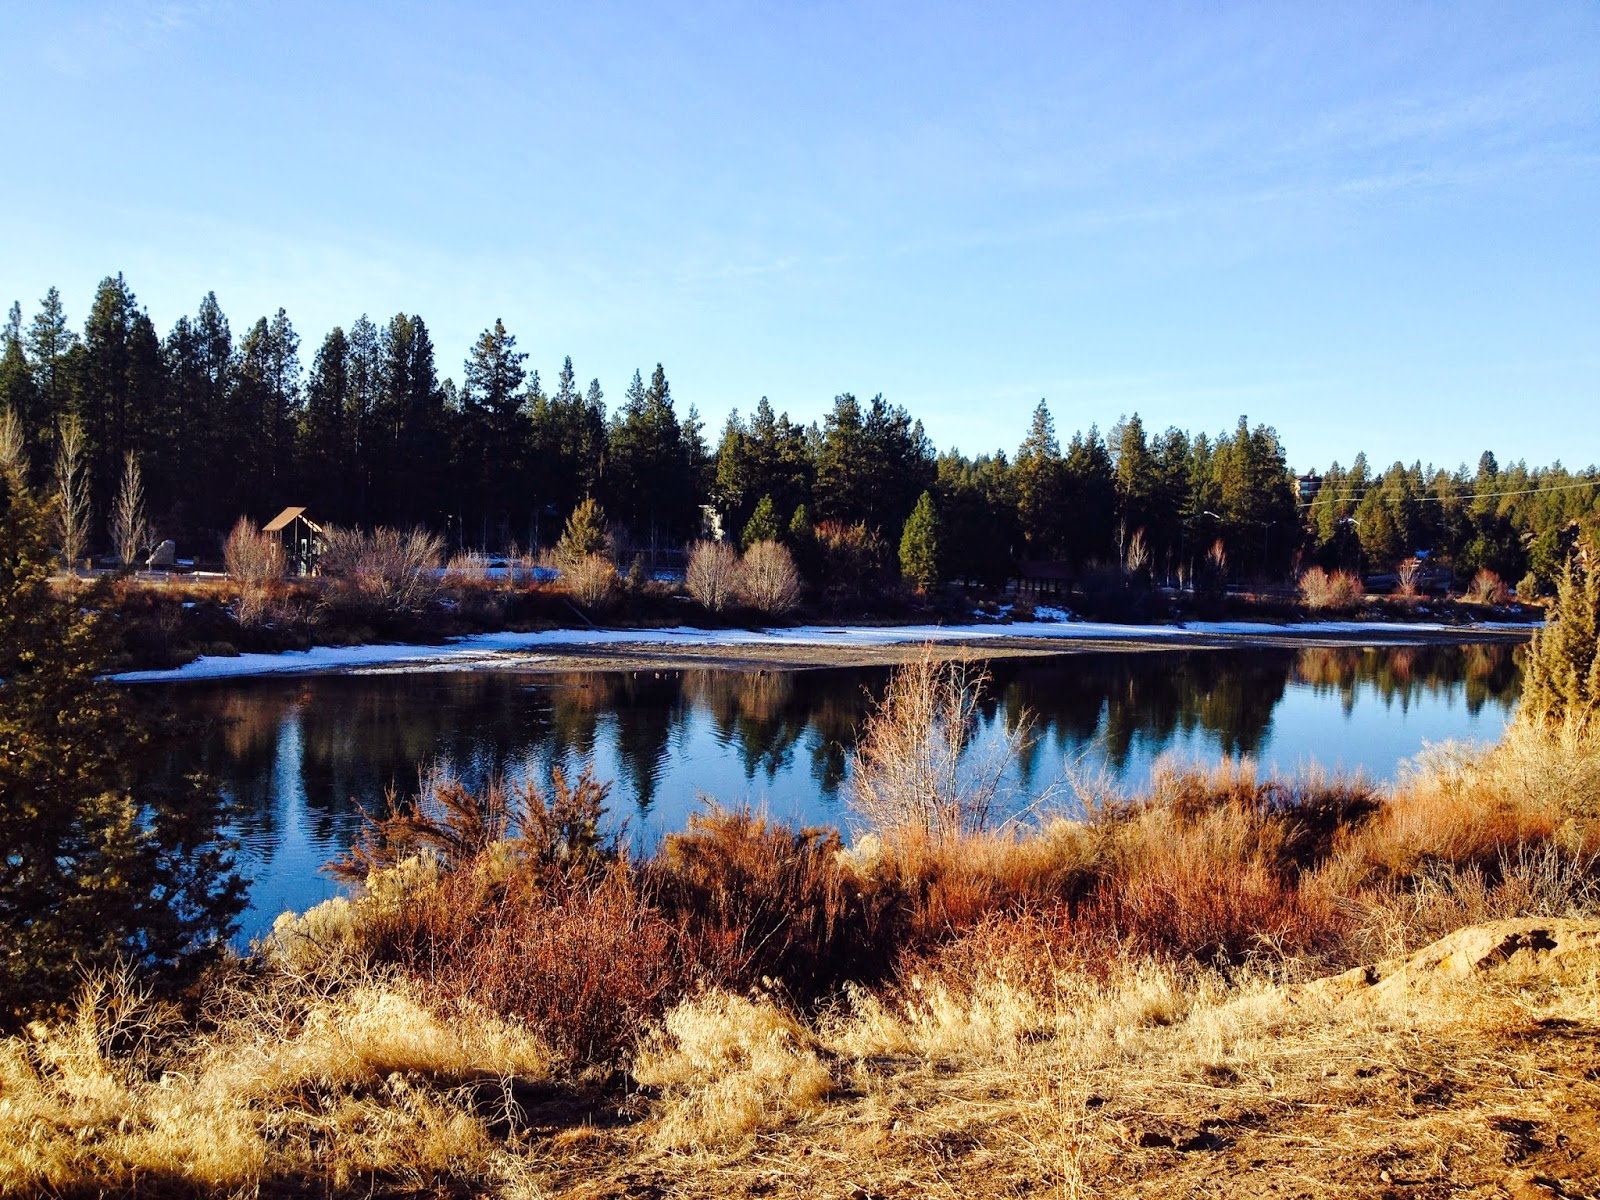 The view hiking the River Trail in Bend, OR